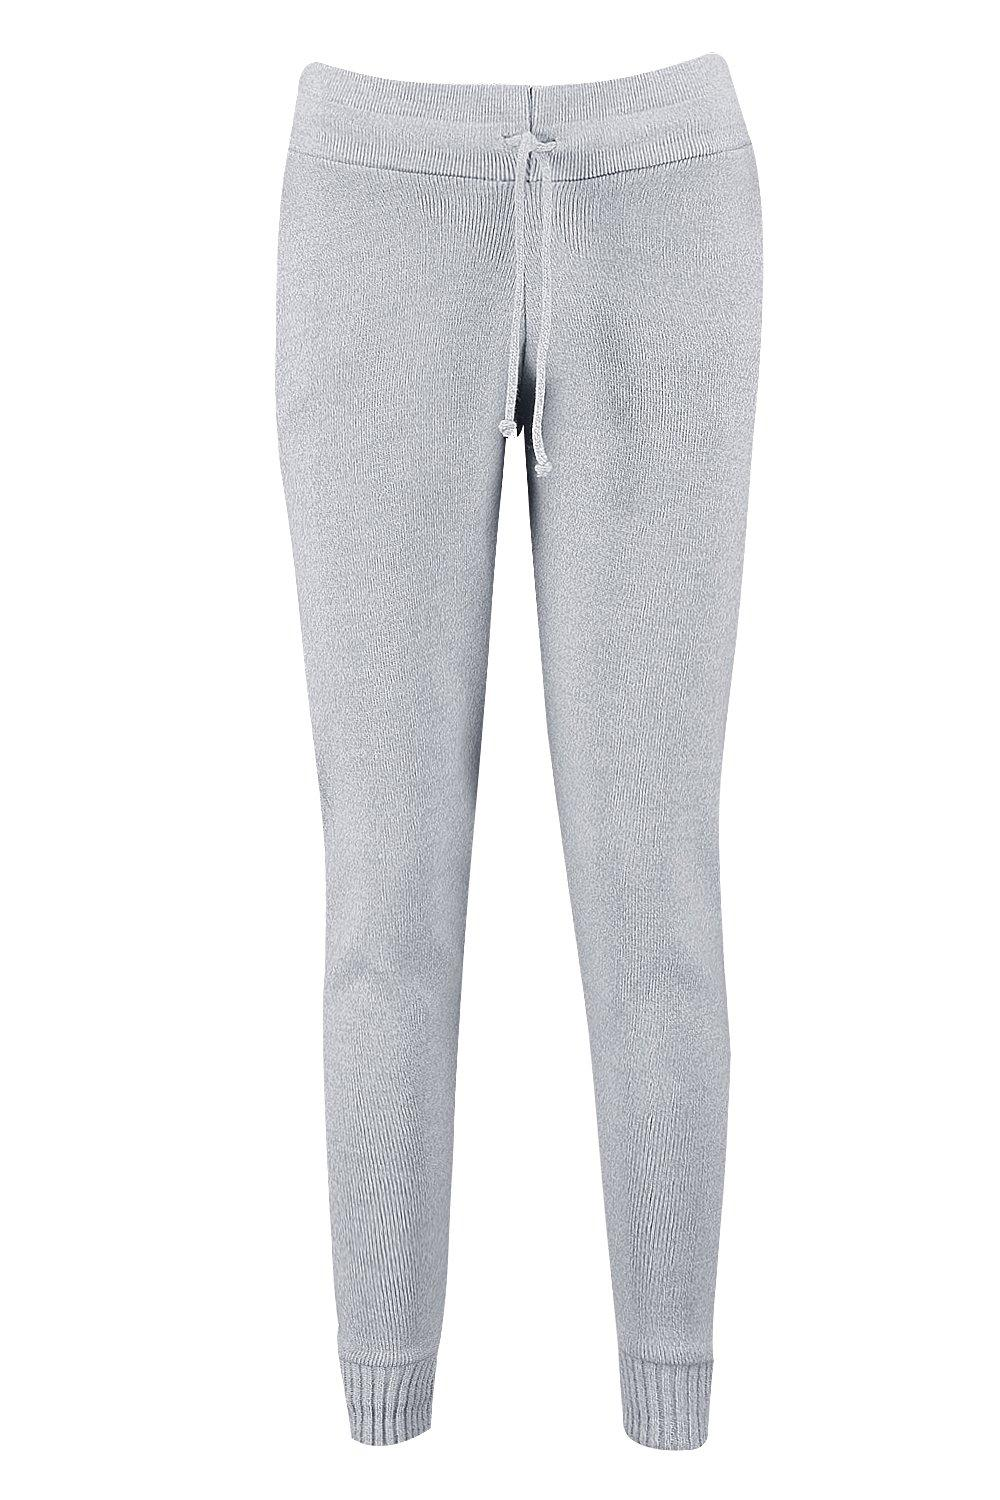 Heavy Lounge Knitted Boutique Boutique Jogger Heavy q4BwxE0v